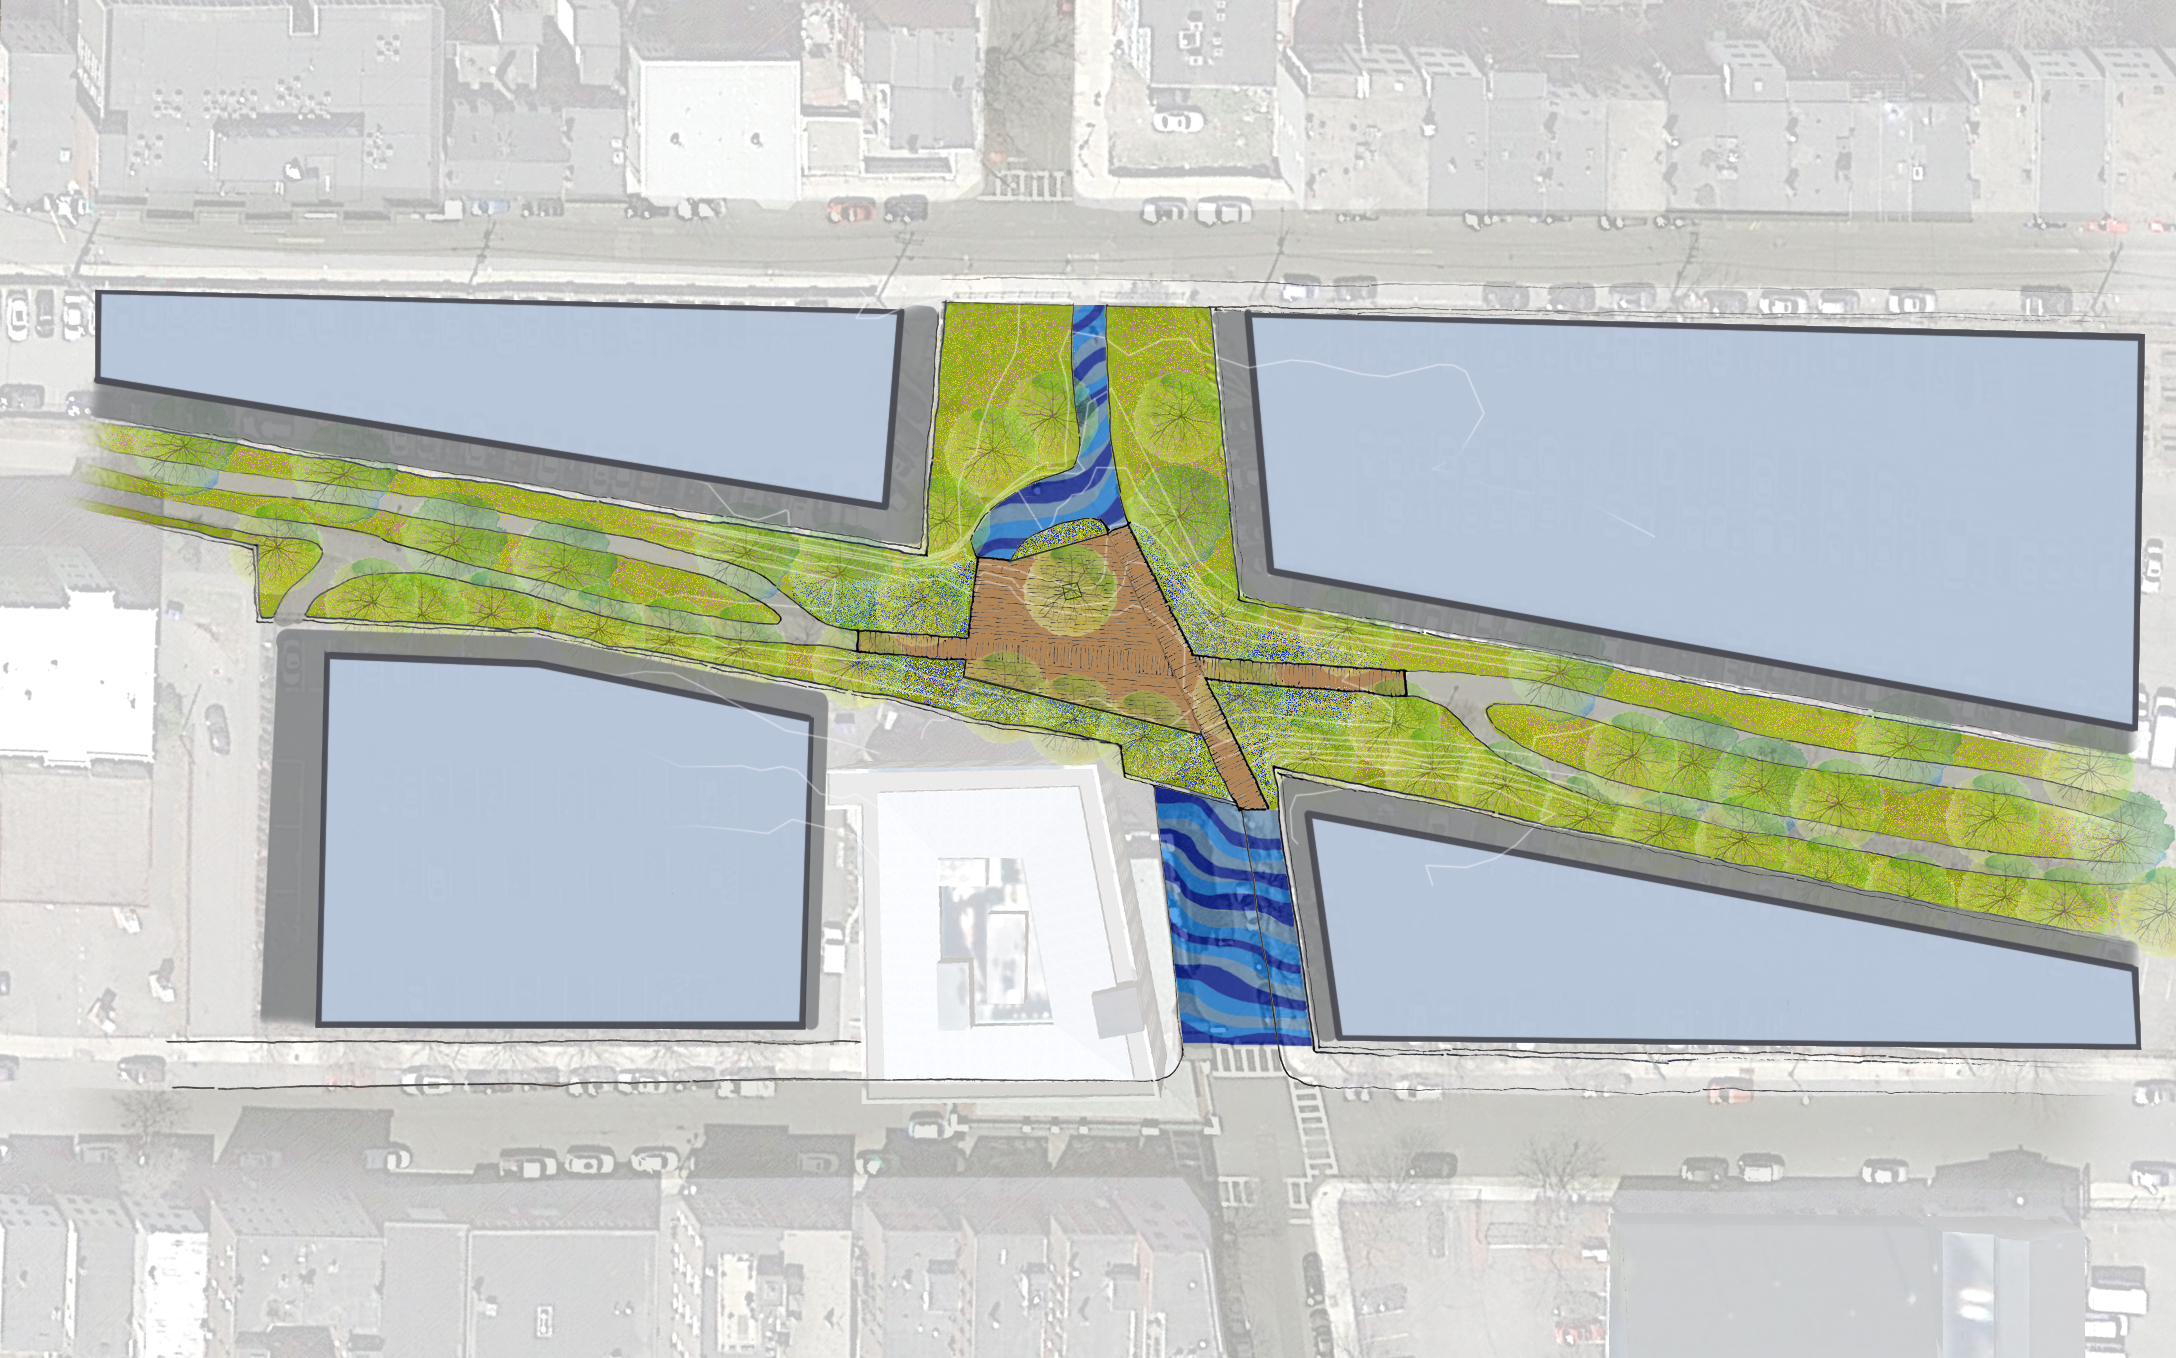 The Long Term Adaptable Plan expands the bridge into a platform for markets, concerts, outdoor classroom space and flexible gathering space. This plan anticipates new buildings on the existing parking lots (shown in blue/grey).